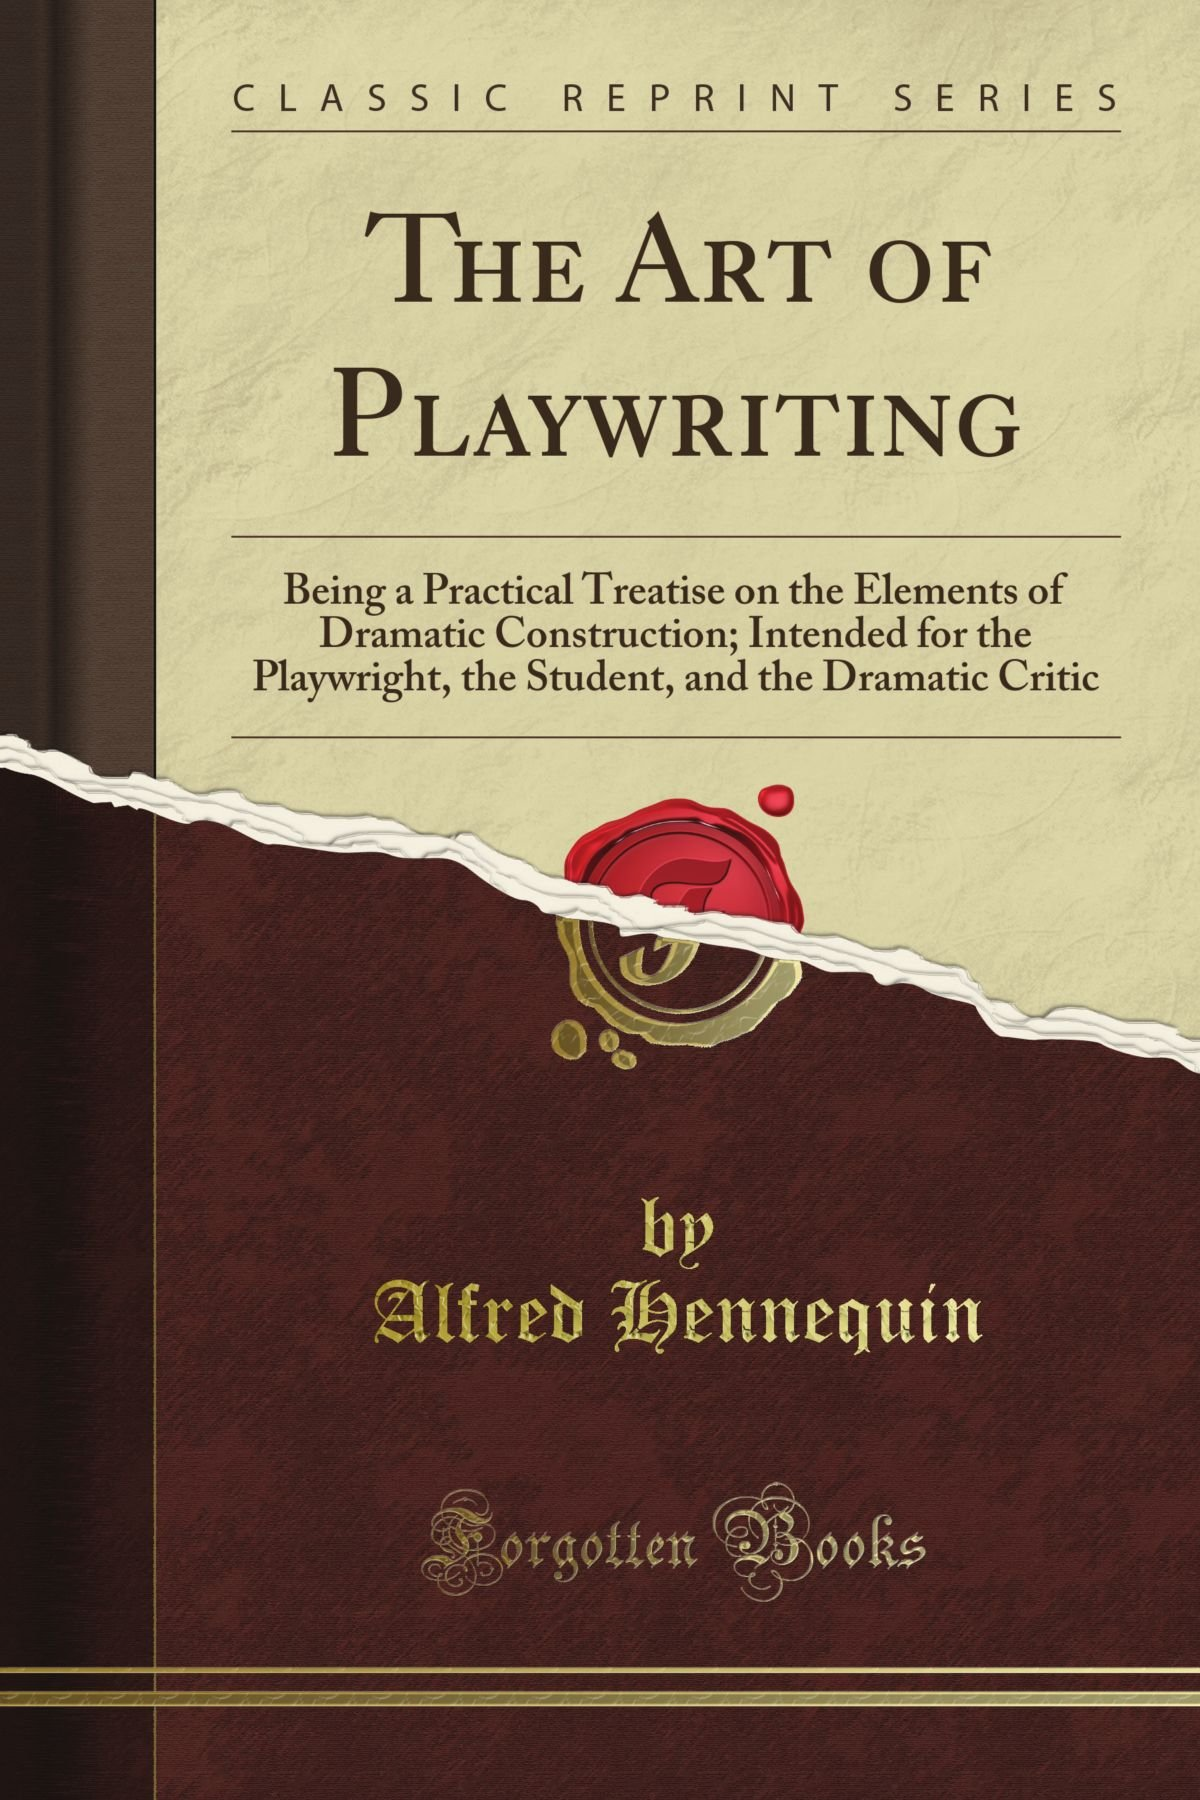 The Art of Playwriting: Being a Practical Treatise on the Elements of Dramatic Construction; Intended for the Playwright, the Student, and the Dramatic Critic (Classic Reprint) ebook